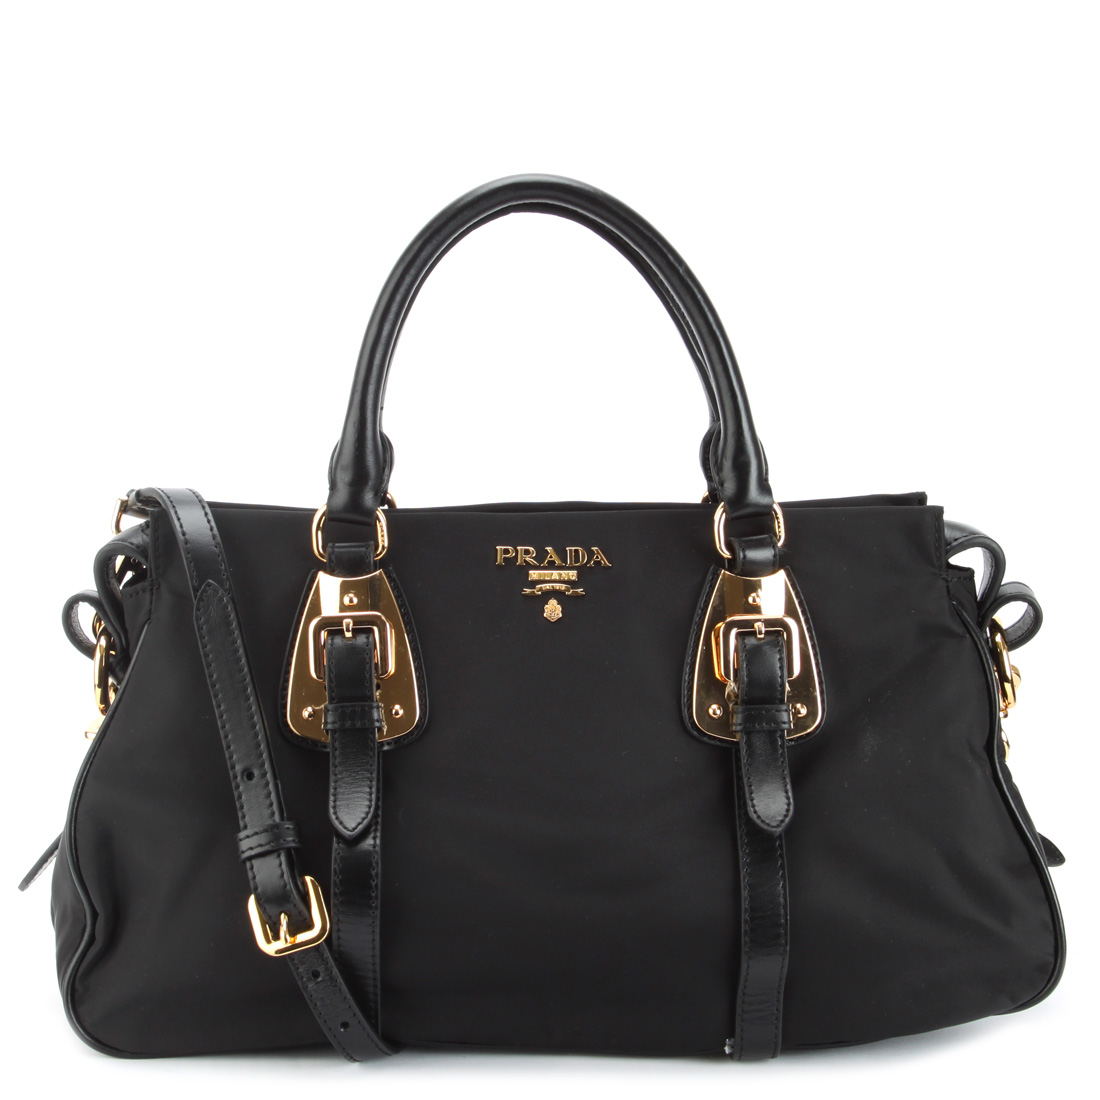 Prada Handbag Wholesale